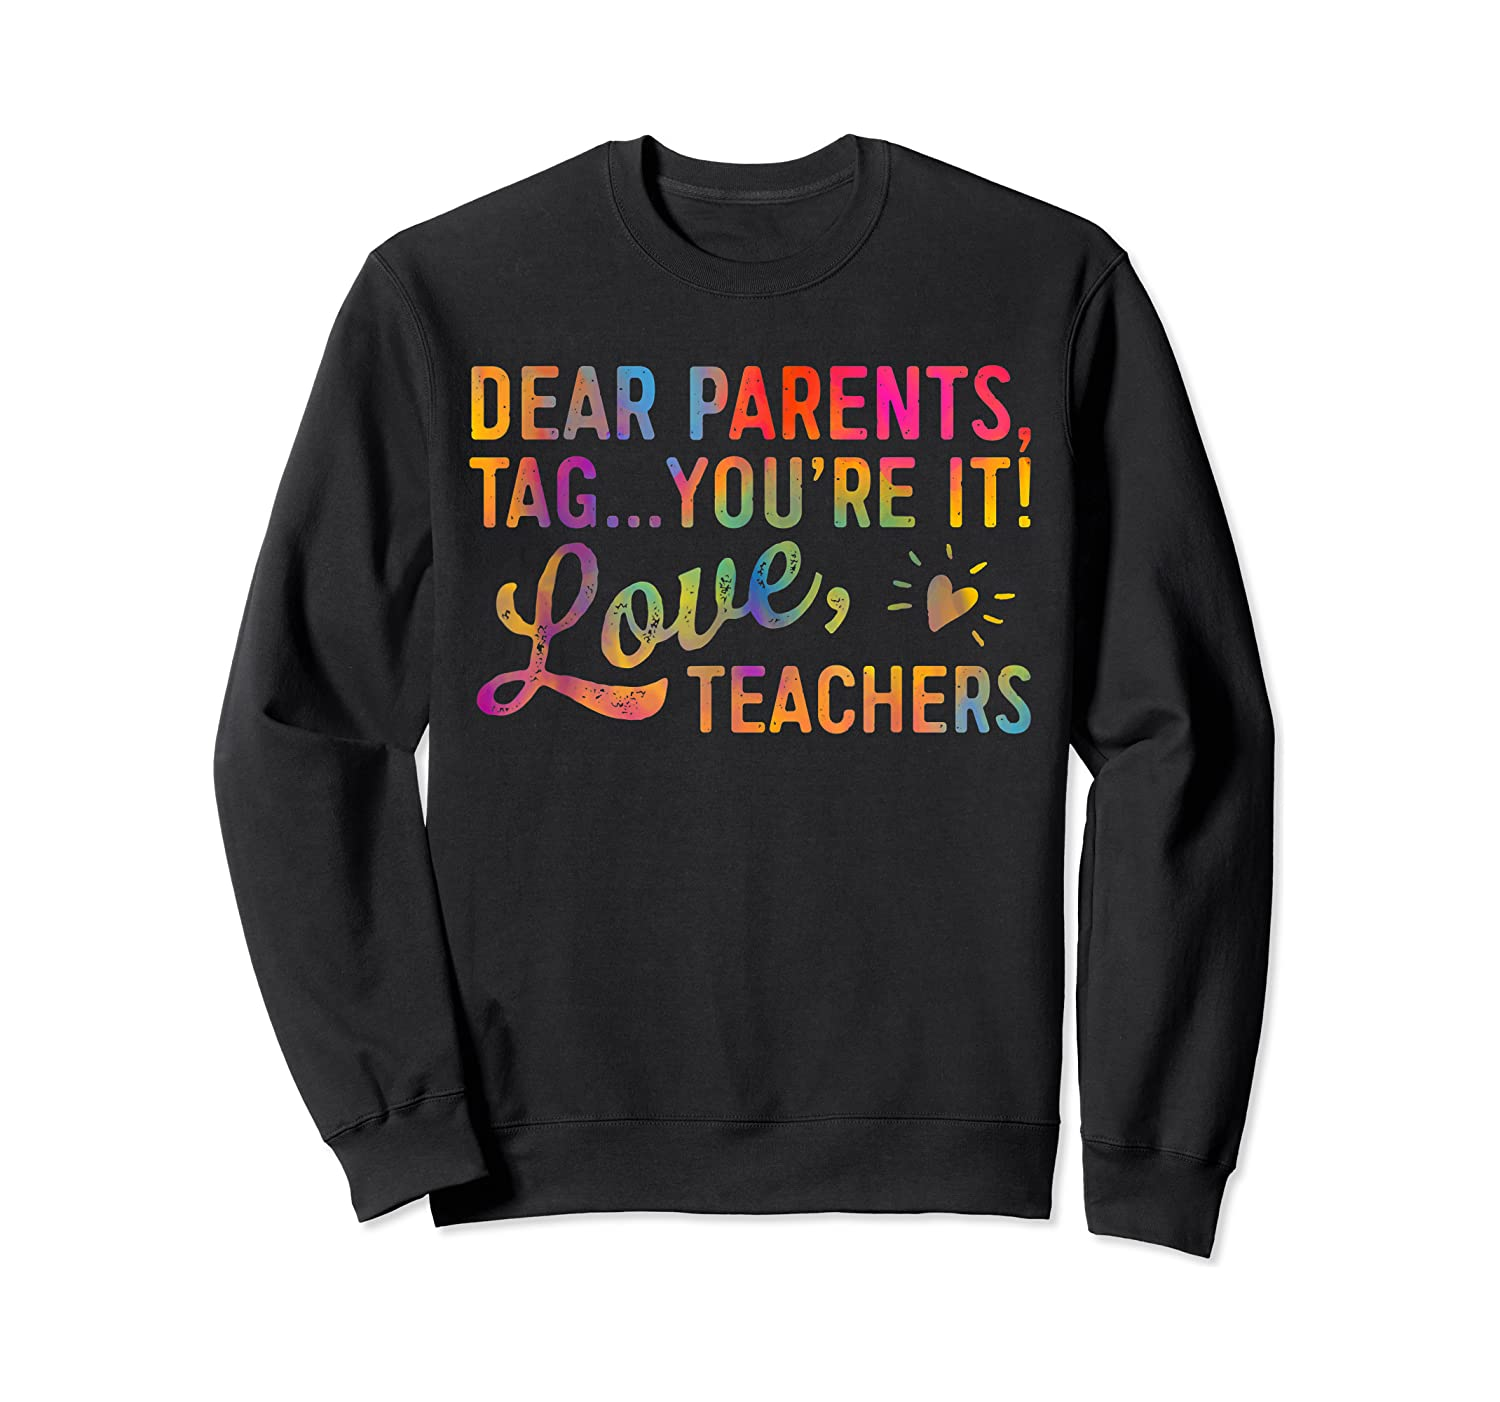 Dear Parents Tag You're It Love Teas Funny Gift Shirts Crewneck Sweater